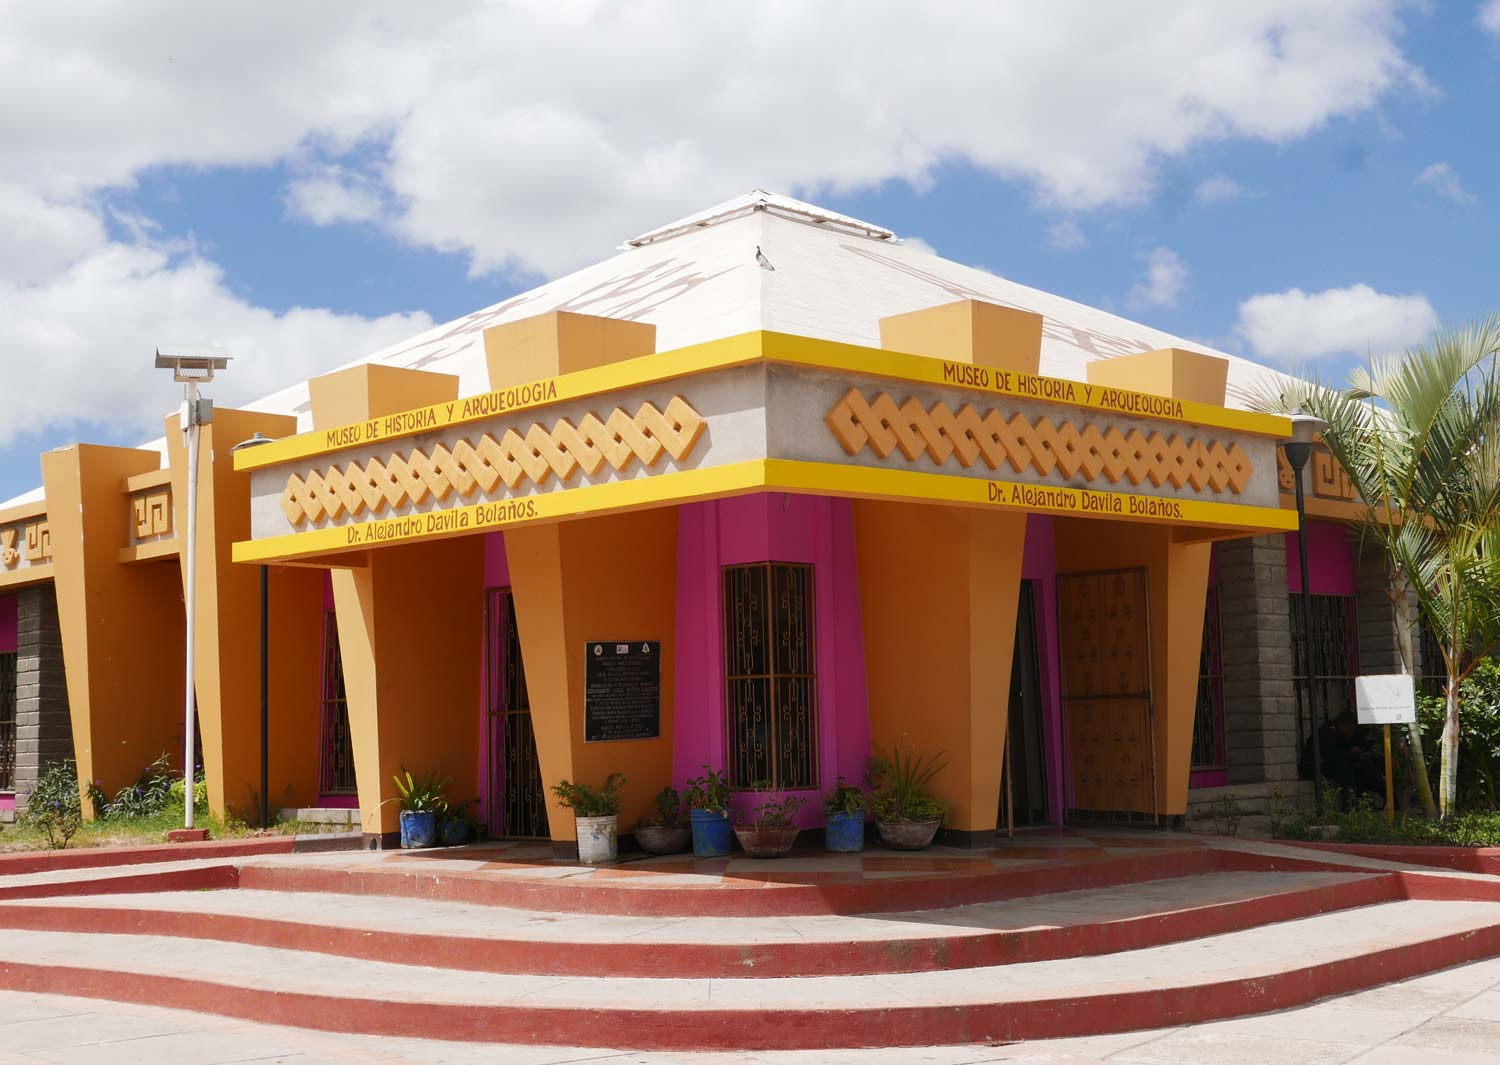 History and archeology museum in Esteli, Nicaragua